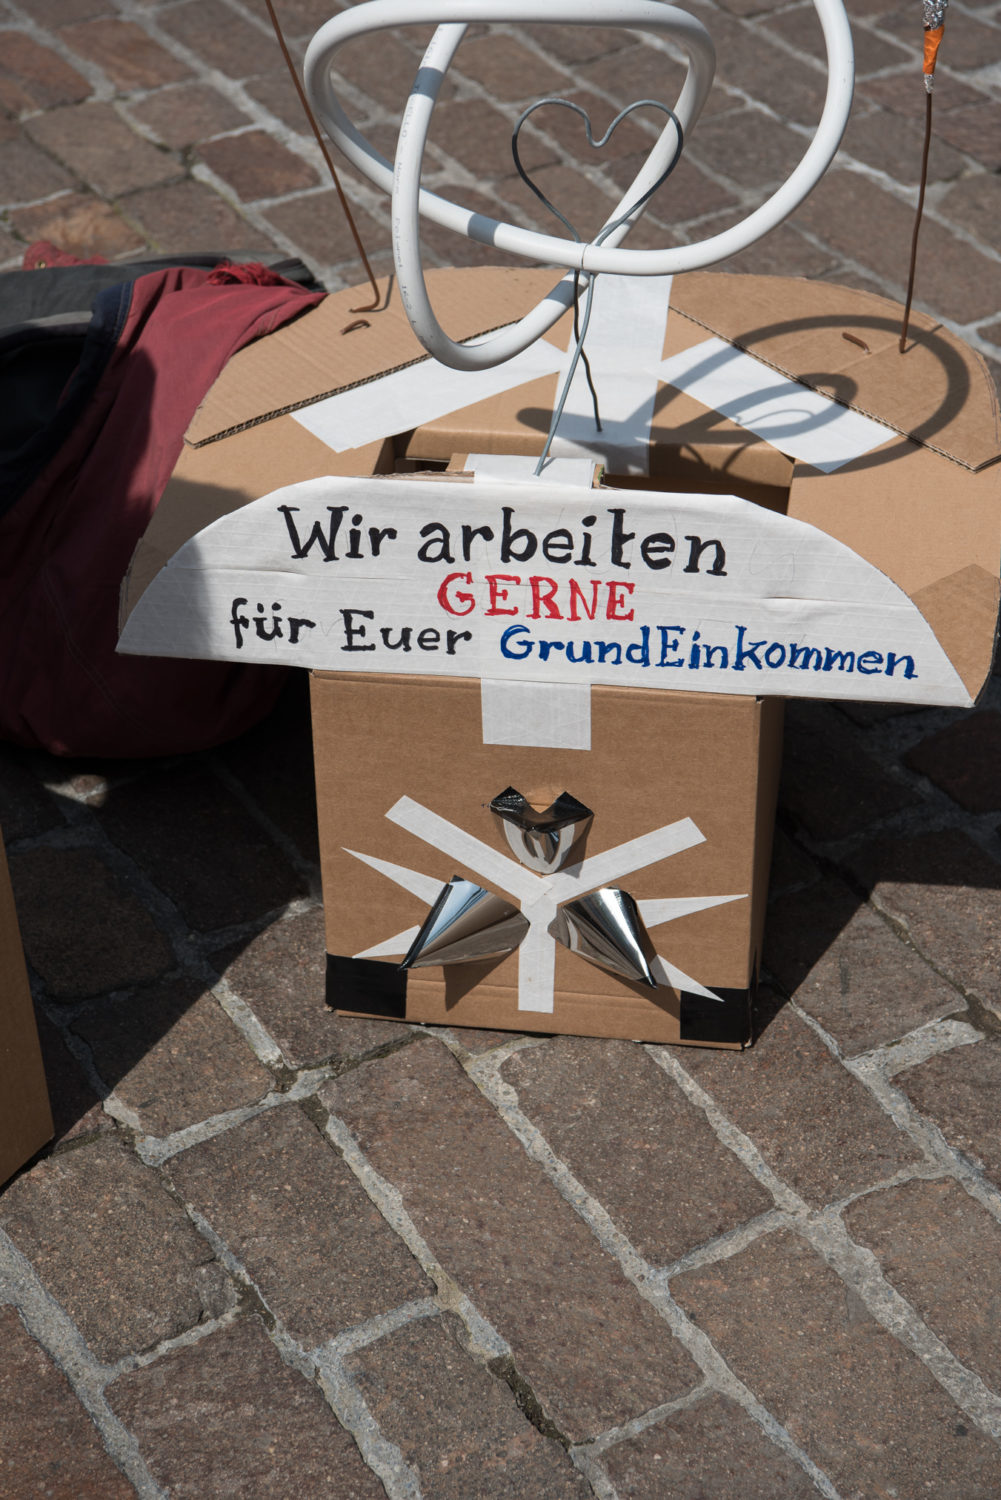 Bahnhofstrasse, Bürkliplatz, Europa, Grundeinkommen, Kanton Zürich, Kreis 1, Nordostschweiz, Paradeplatz, Photo-Bot, Schweiz, Werdmühleplatz, Zürich, _THEMES, anlässe, demo, demonstration, district 1, events, initiative, object, objekt, political event, politics, politik, politik anlass, roboter, robots, swiss initiative